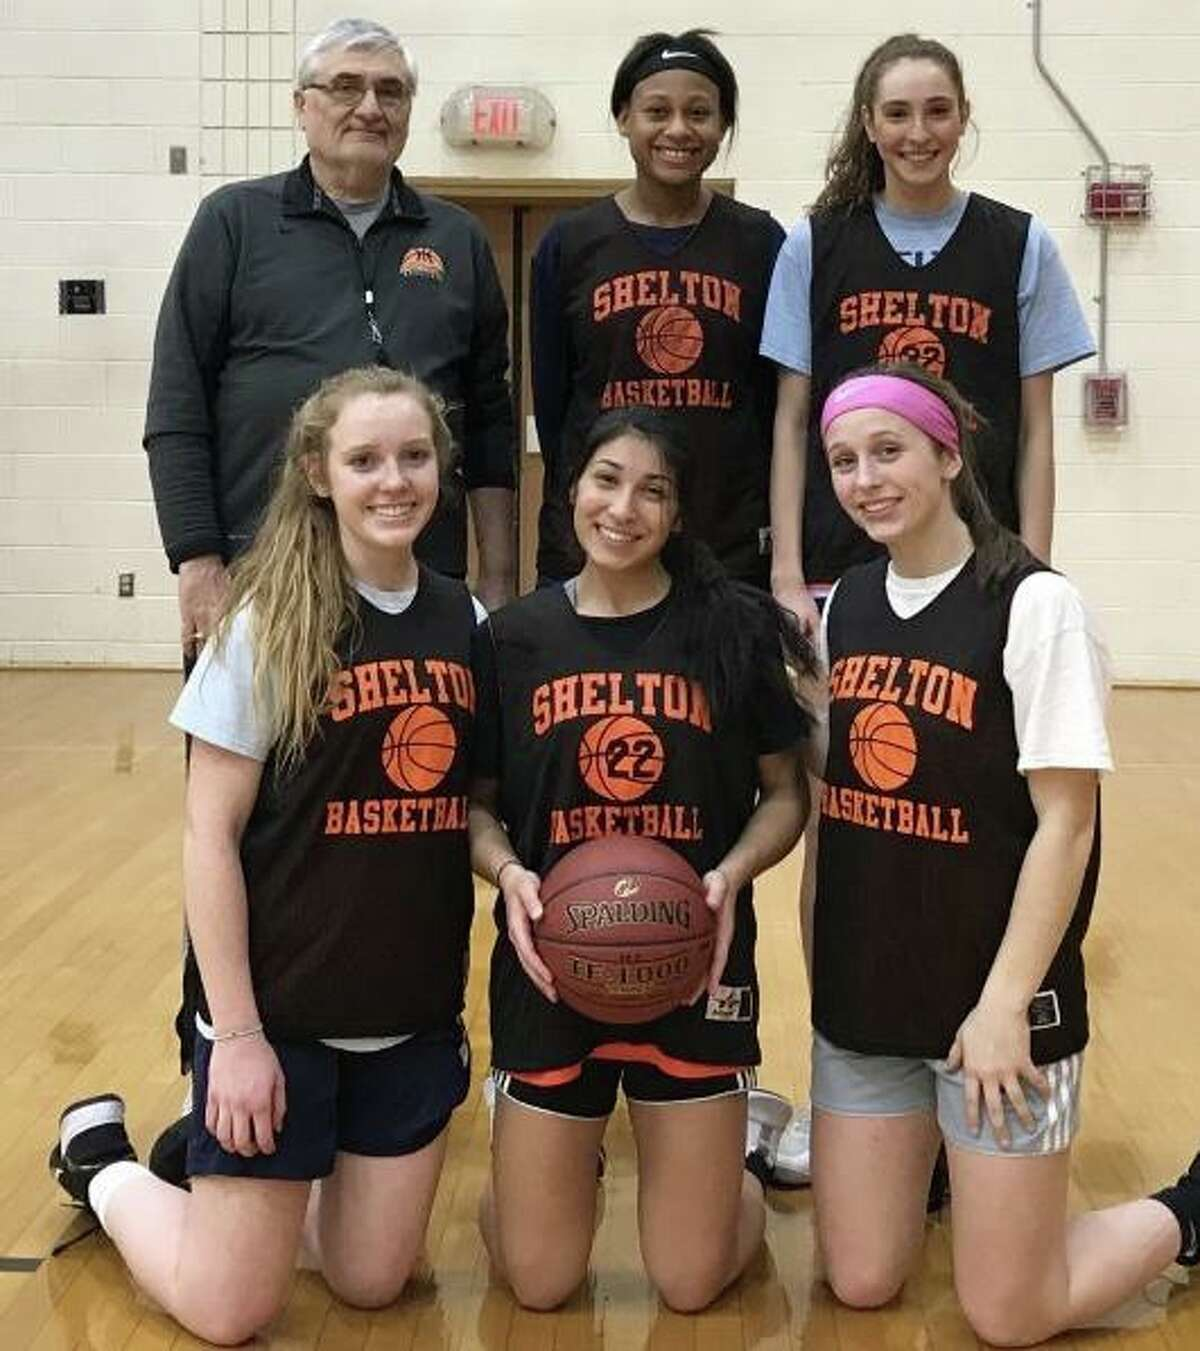 Shelton has opened its season with a 12-1 record. Pictured (front row) are Keira O'Connor, Leya Vohra and Devan Wildman; (second row) coach Joe Cavallaro, Clarissa Pierre and Reem Abdel-Hack.